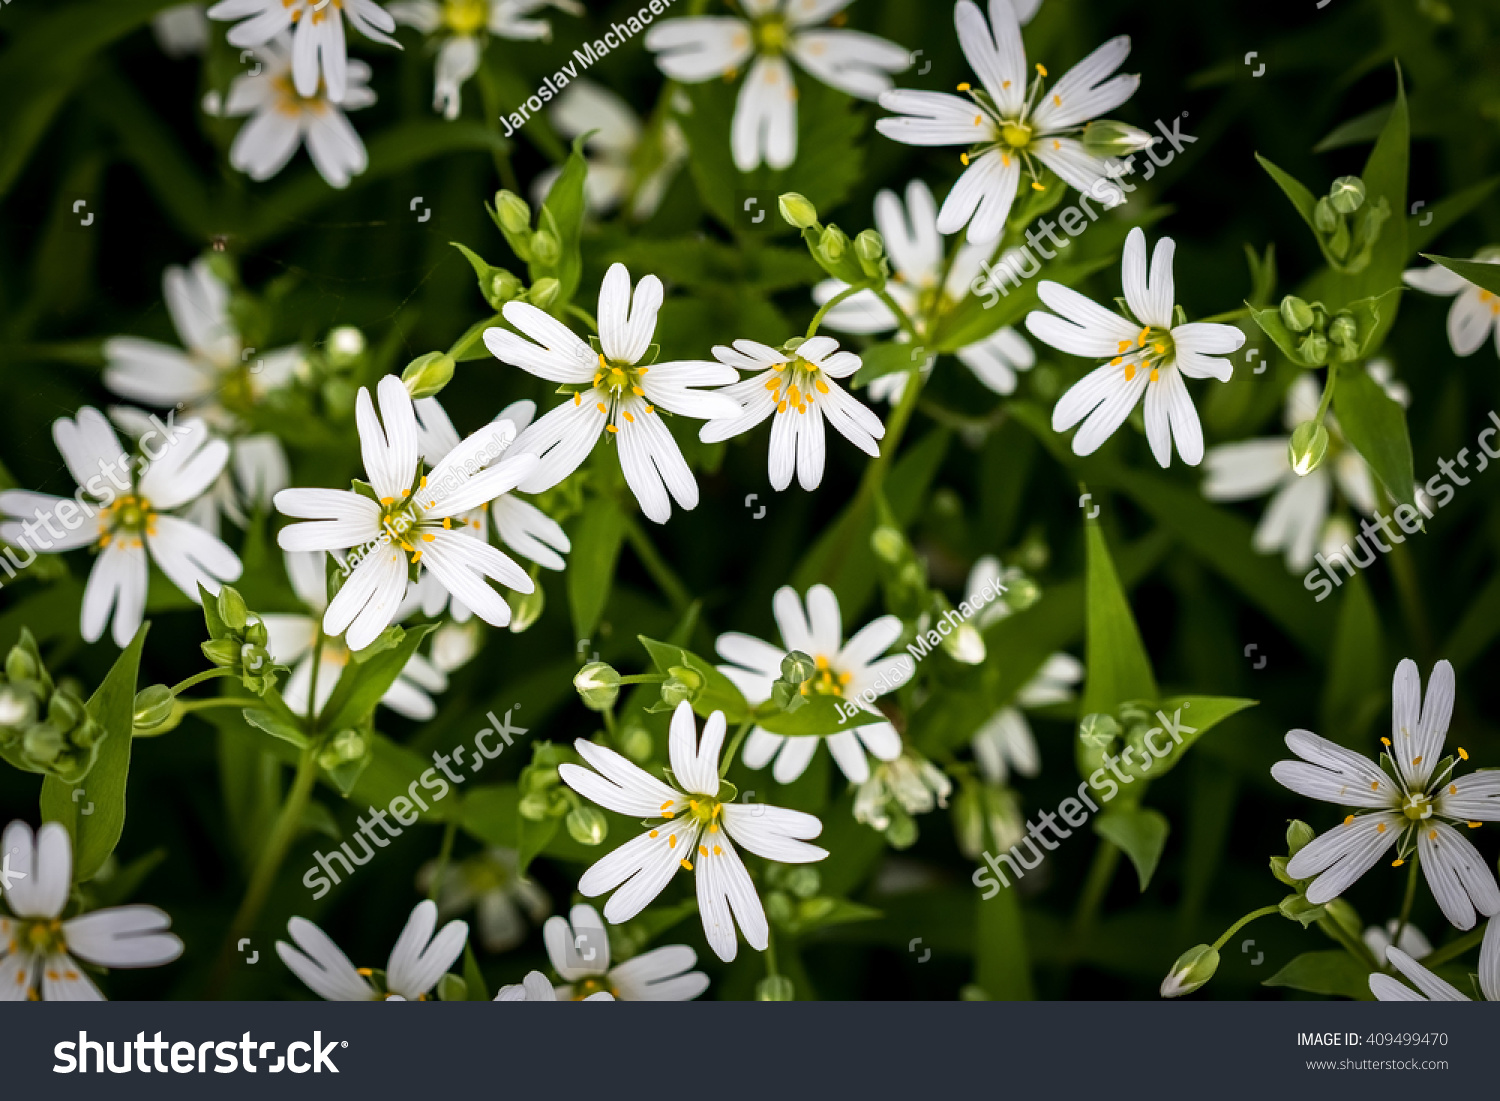 Amazing Spring White Flowers Of Chickweed On Green Background With